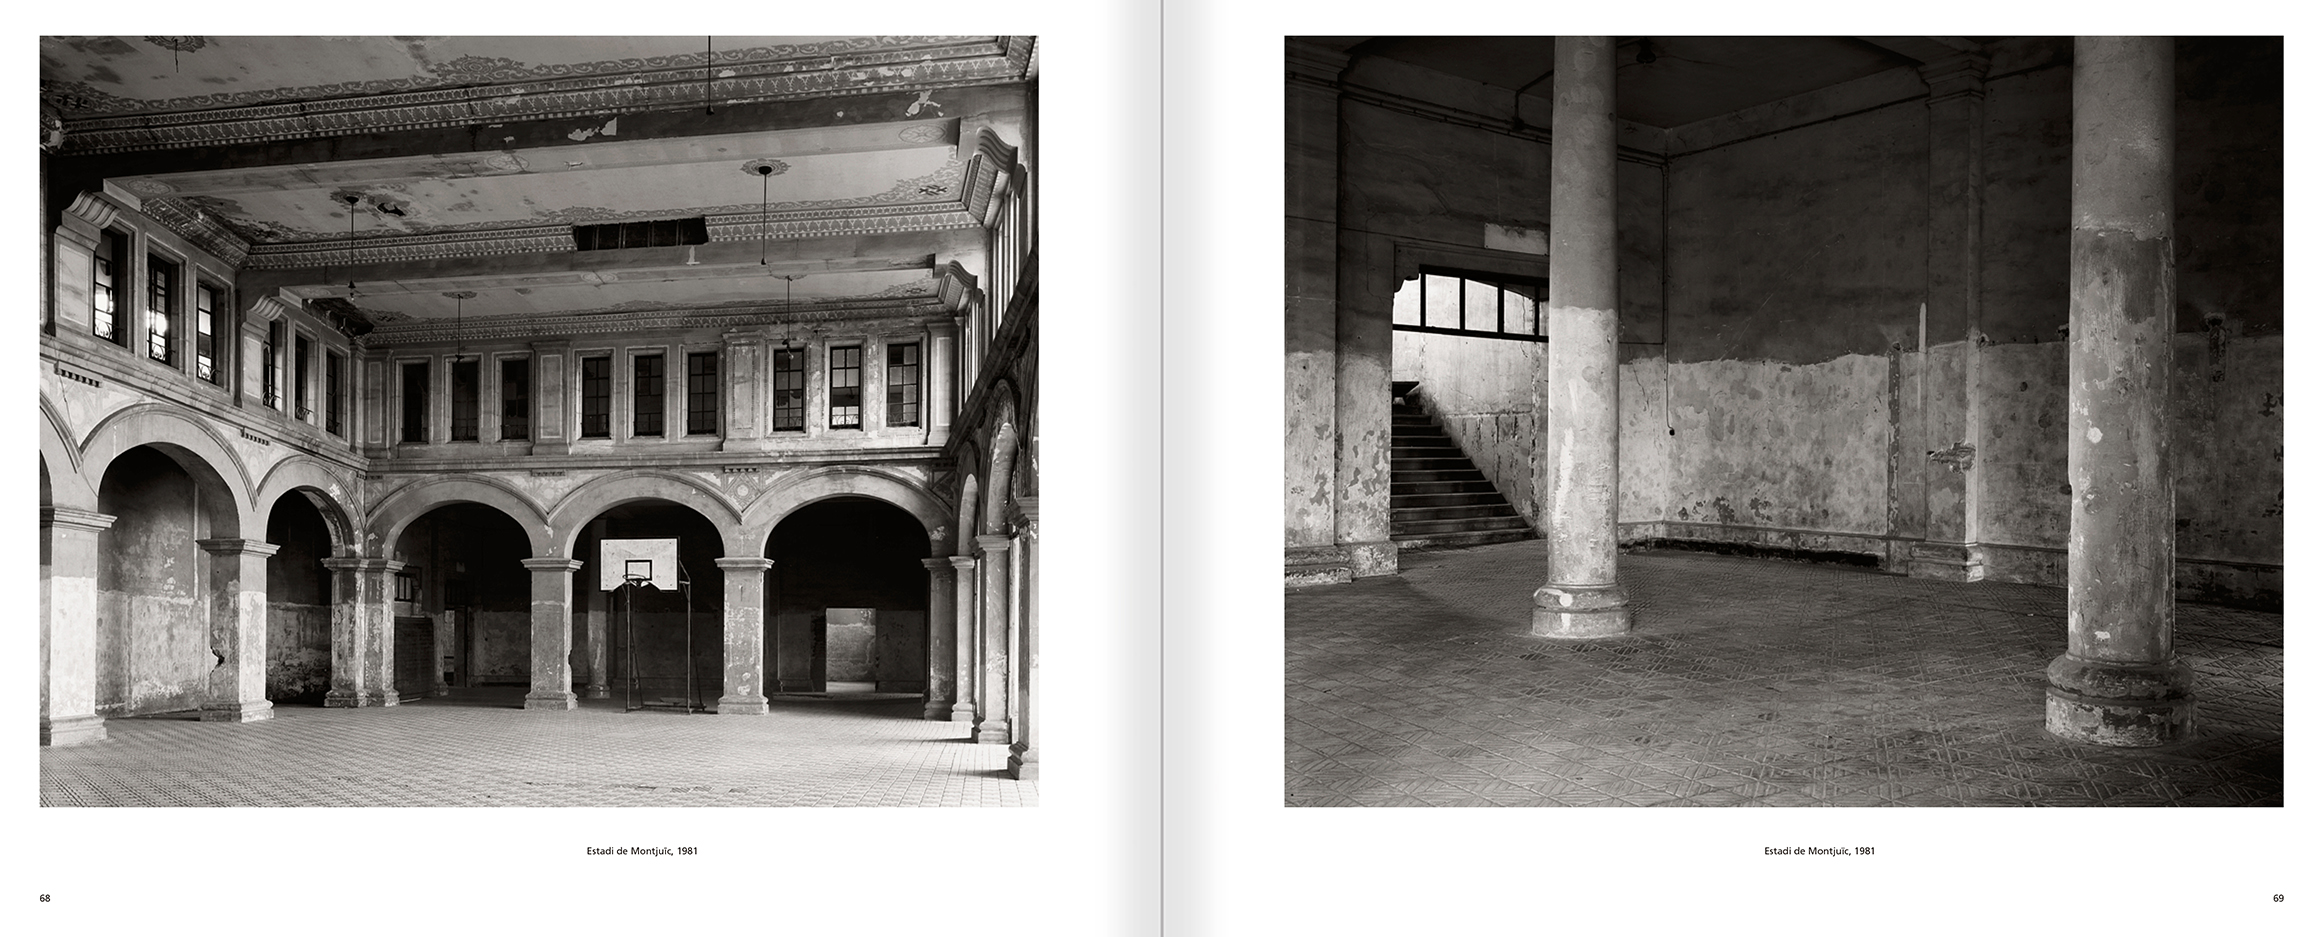 Selection from the catalogue 'Barcelona 1978-1997. Manolo Laguillo', pages 68 and 69